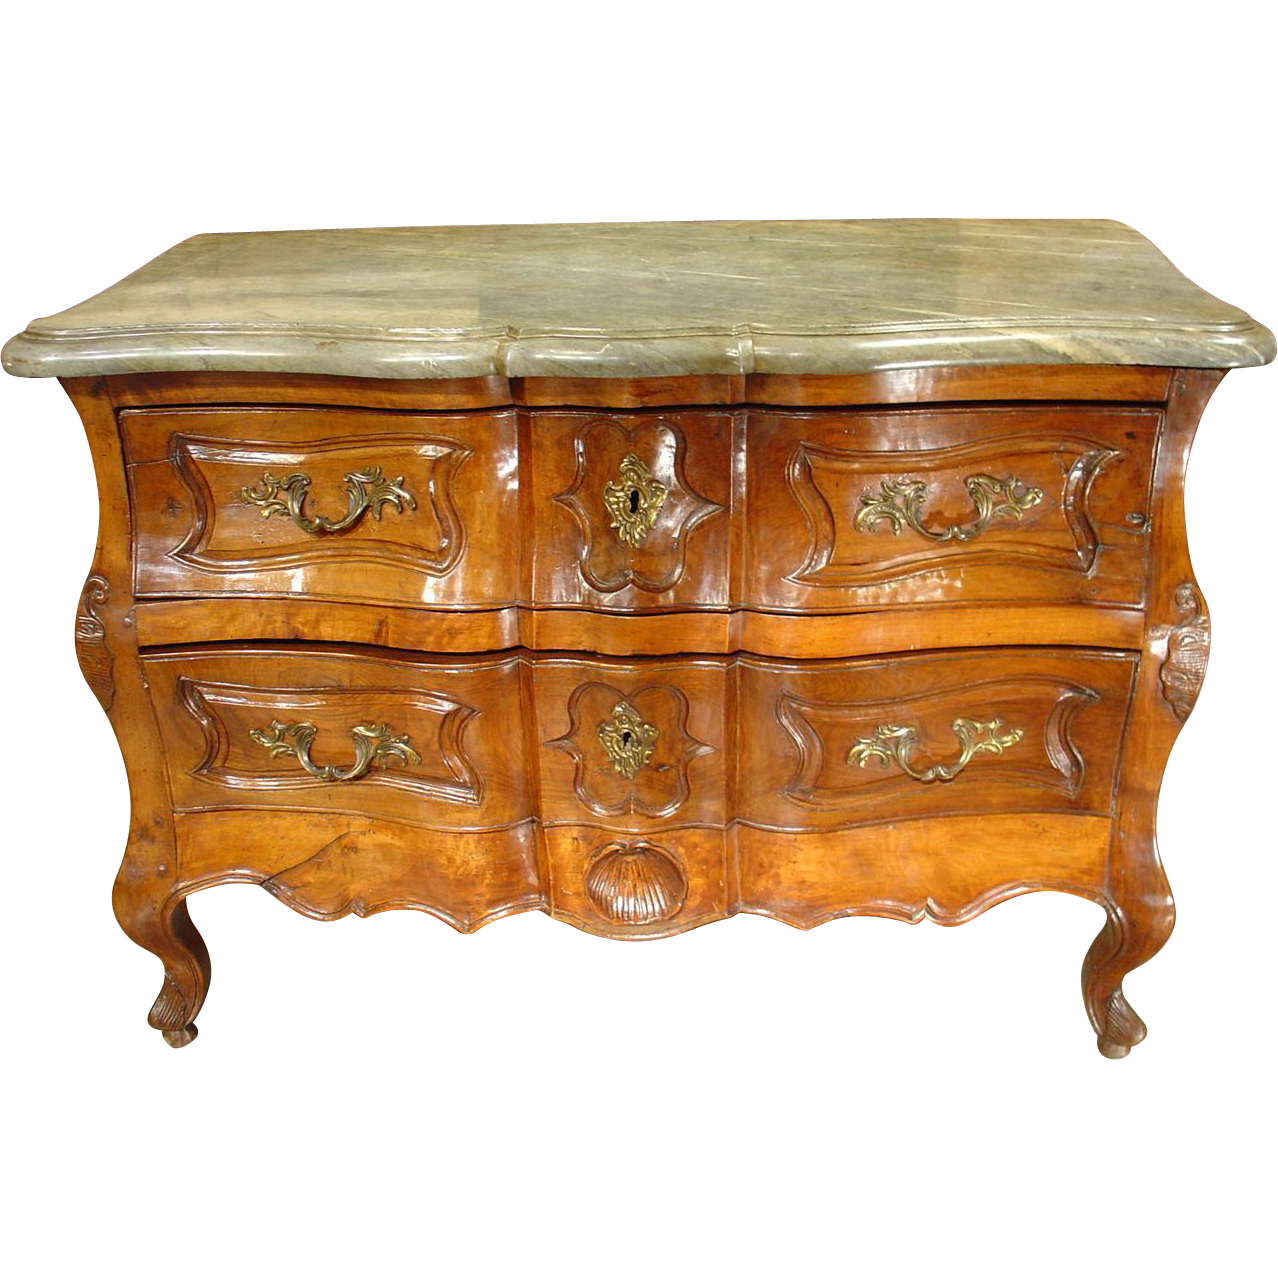 Unusual 18th Century Walnut Wood Commode from Languedoc with Original Saint Cyr Stone Top